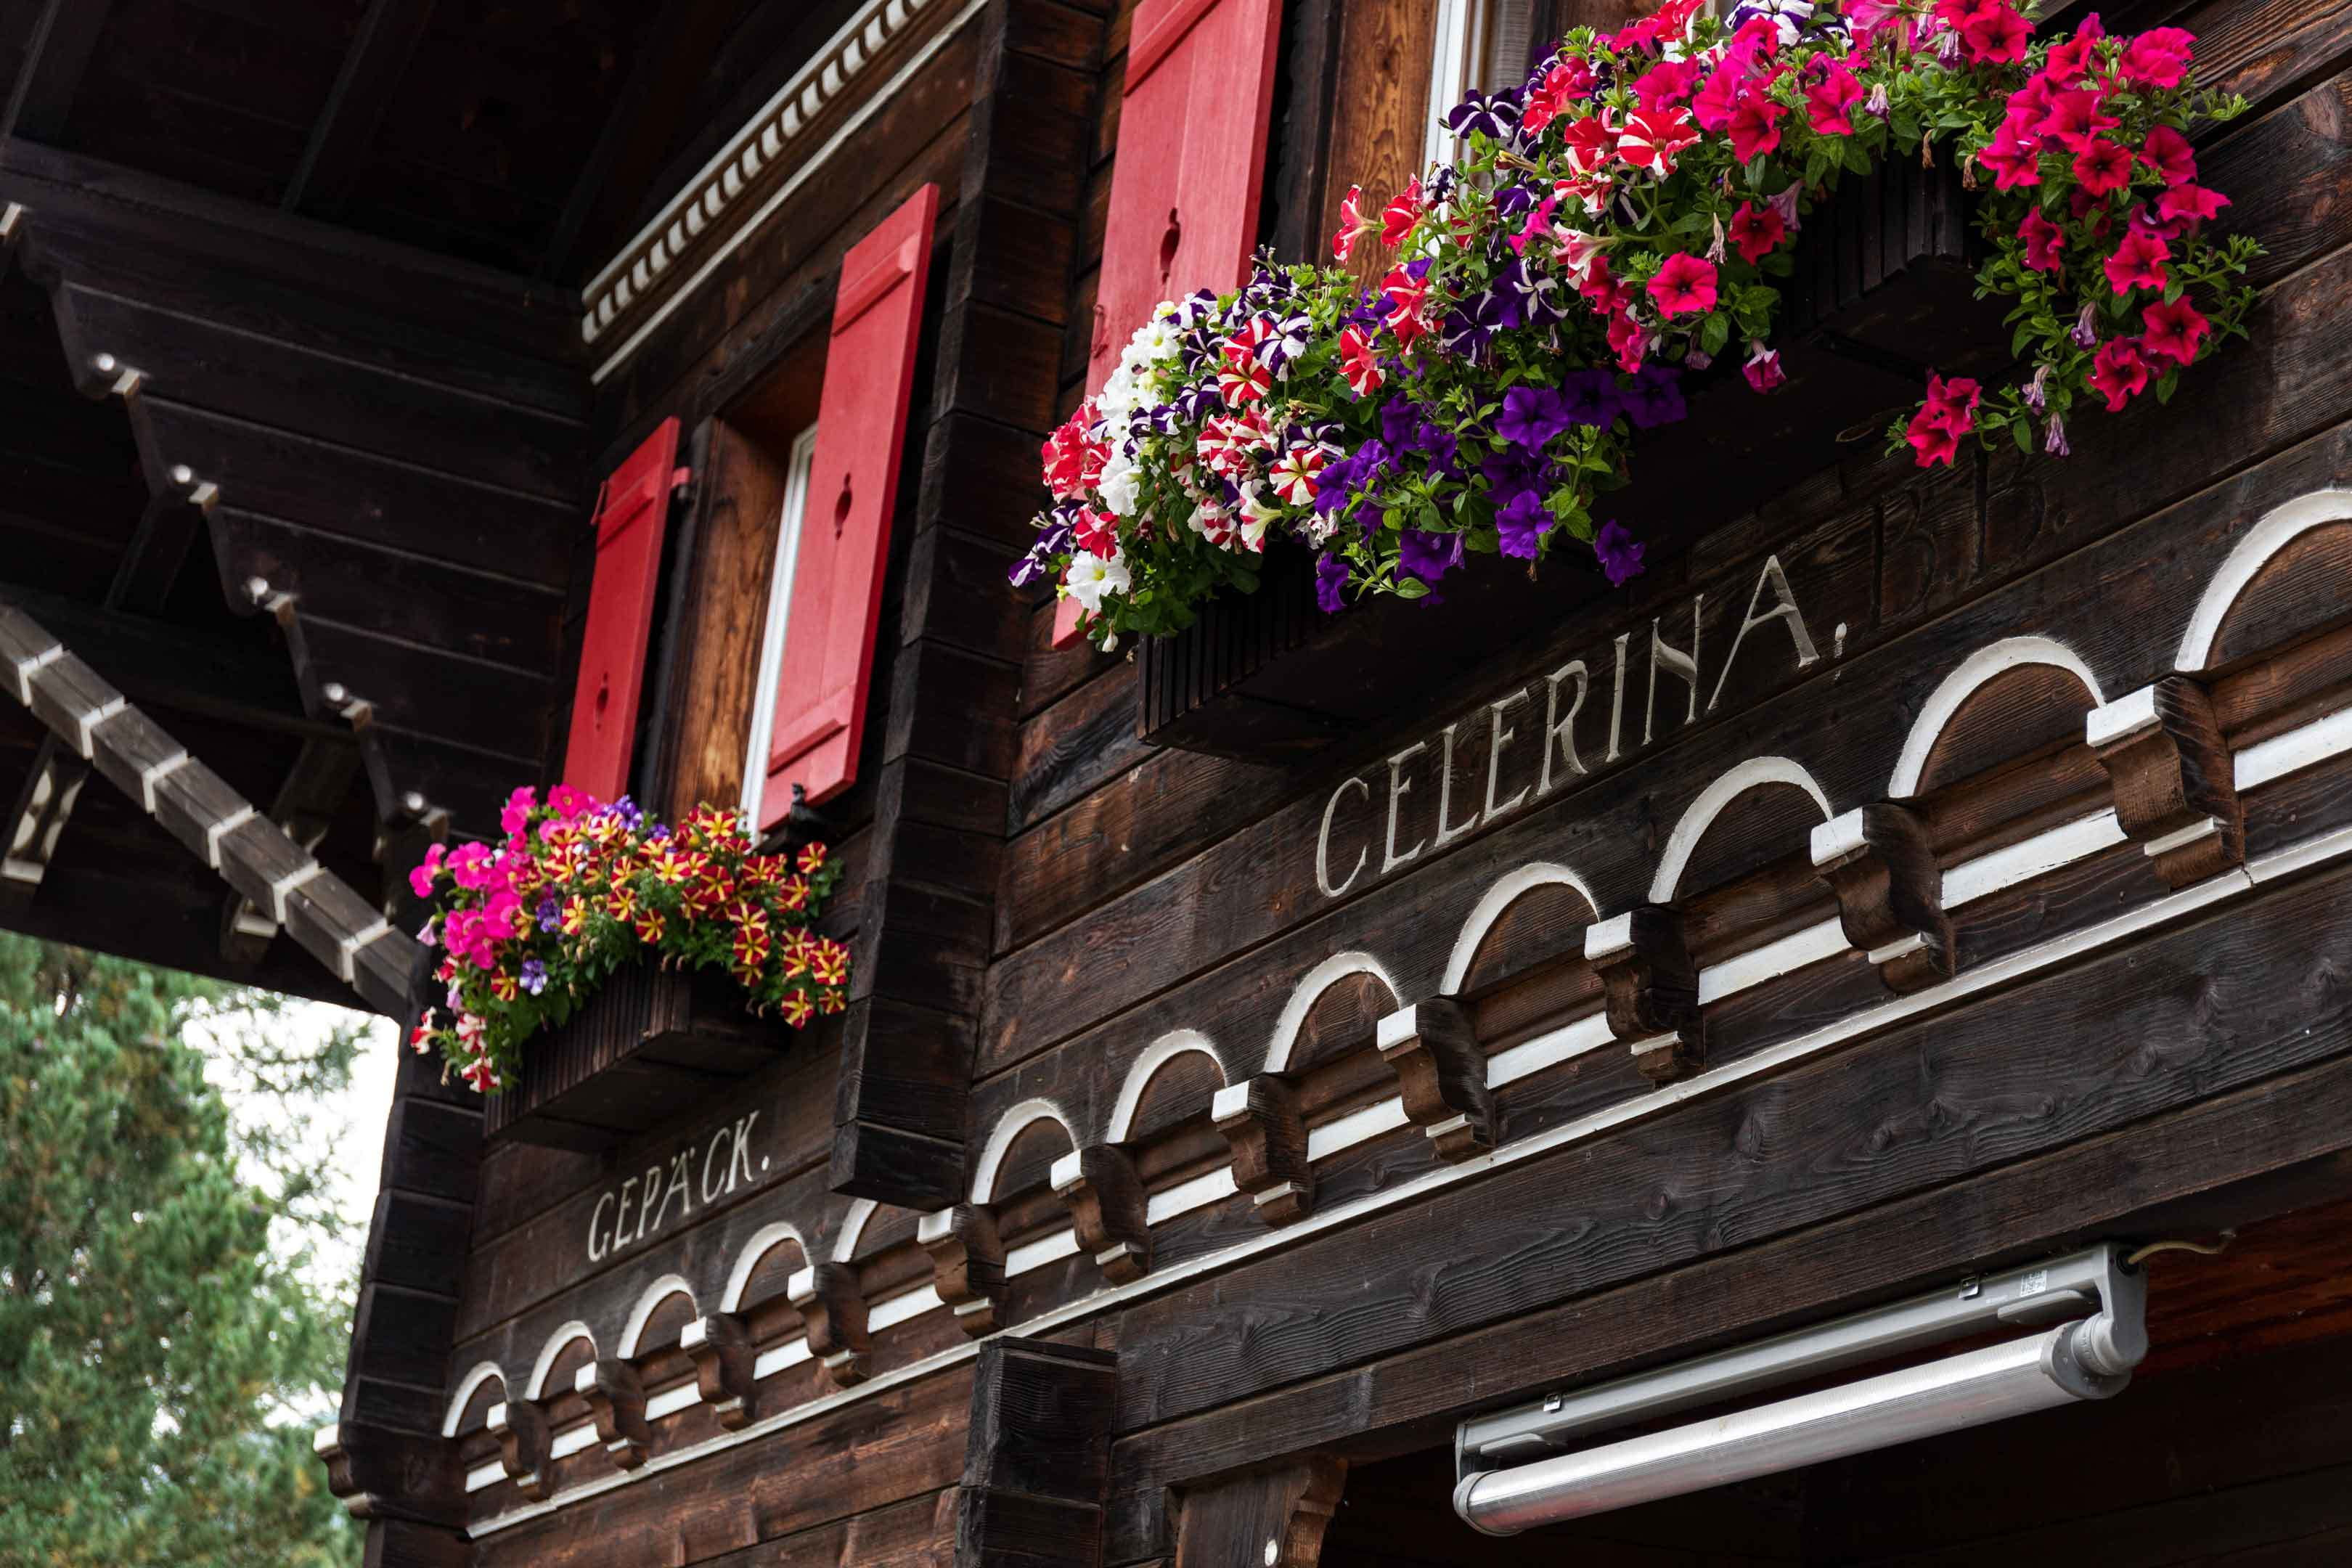 Celerina – the village in the heart of the Engadin